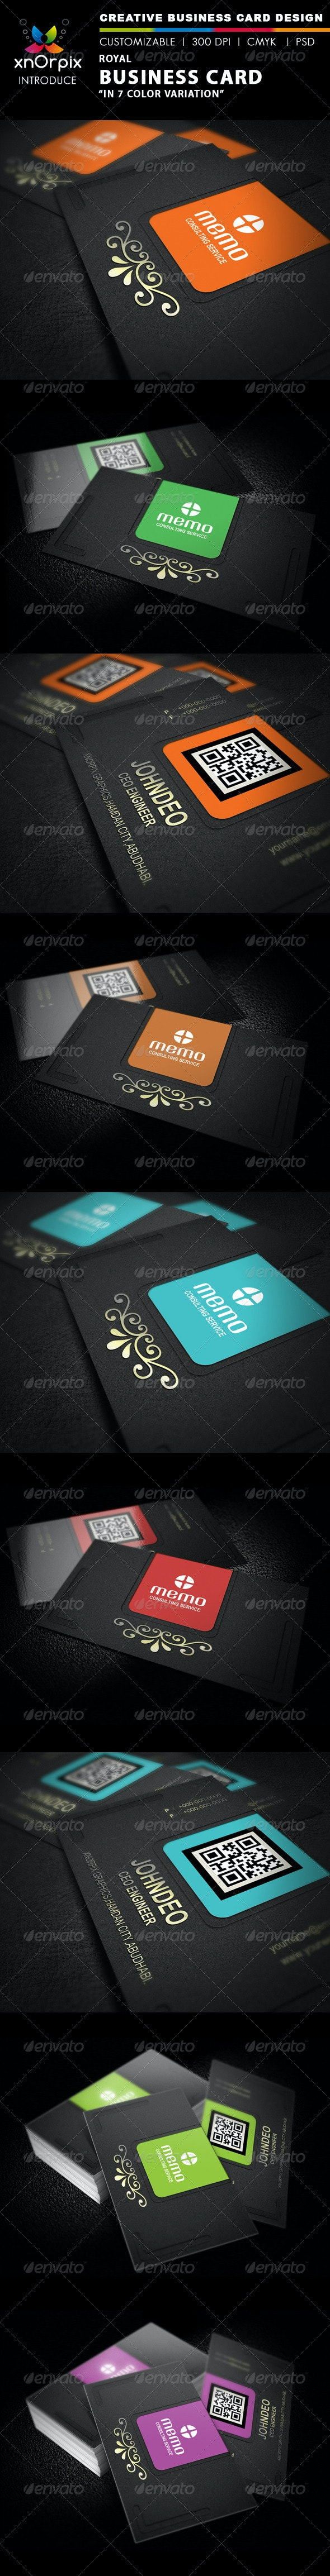 Royal Business Card - Business Cards Print Templates